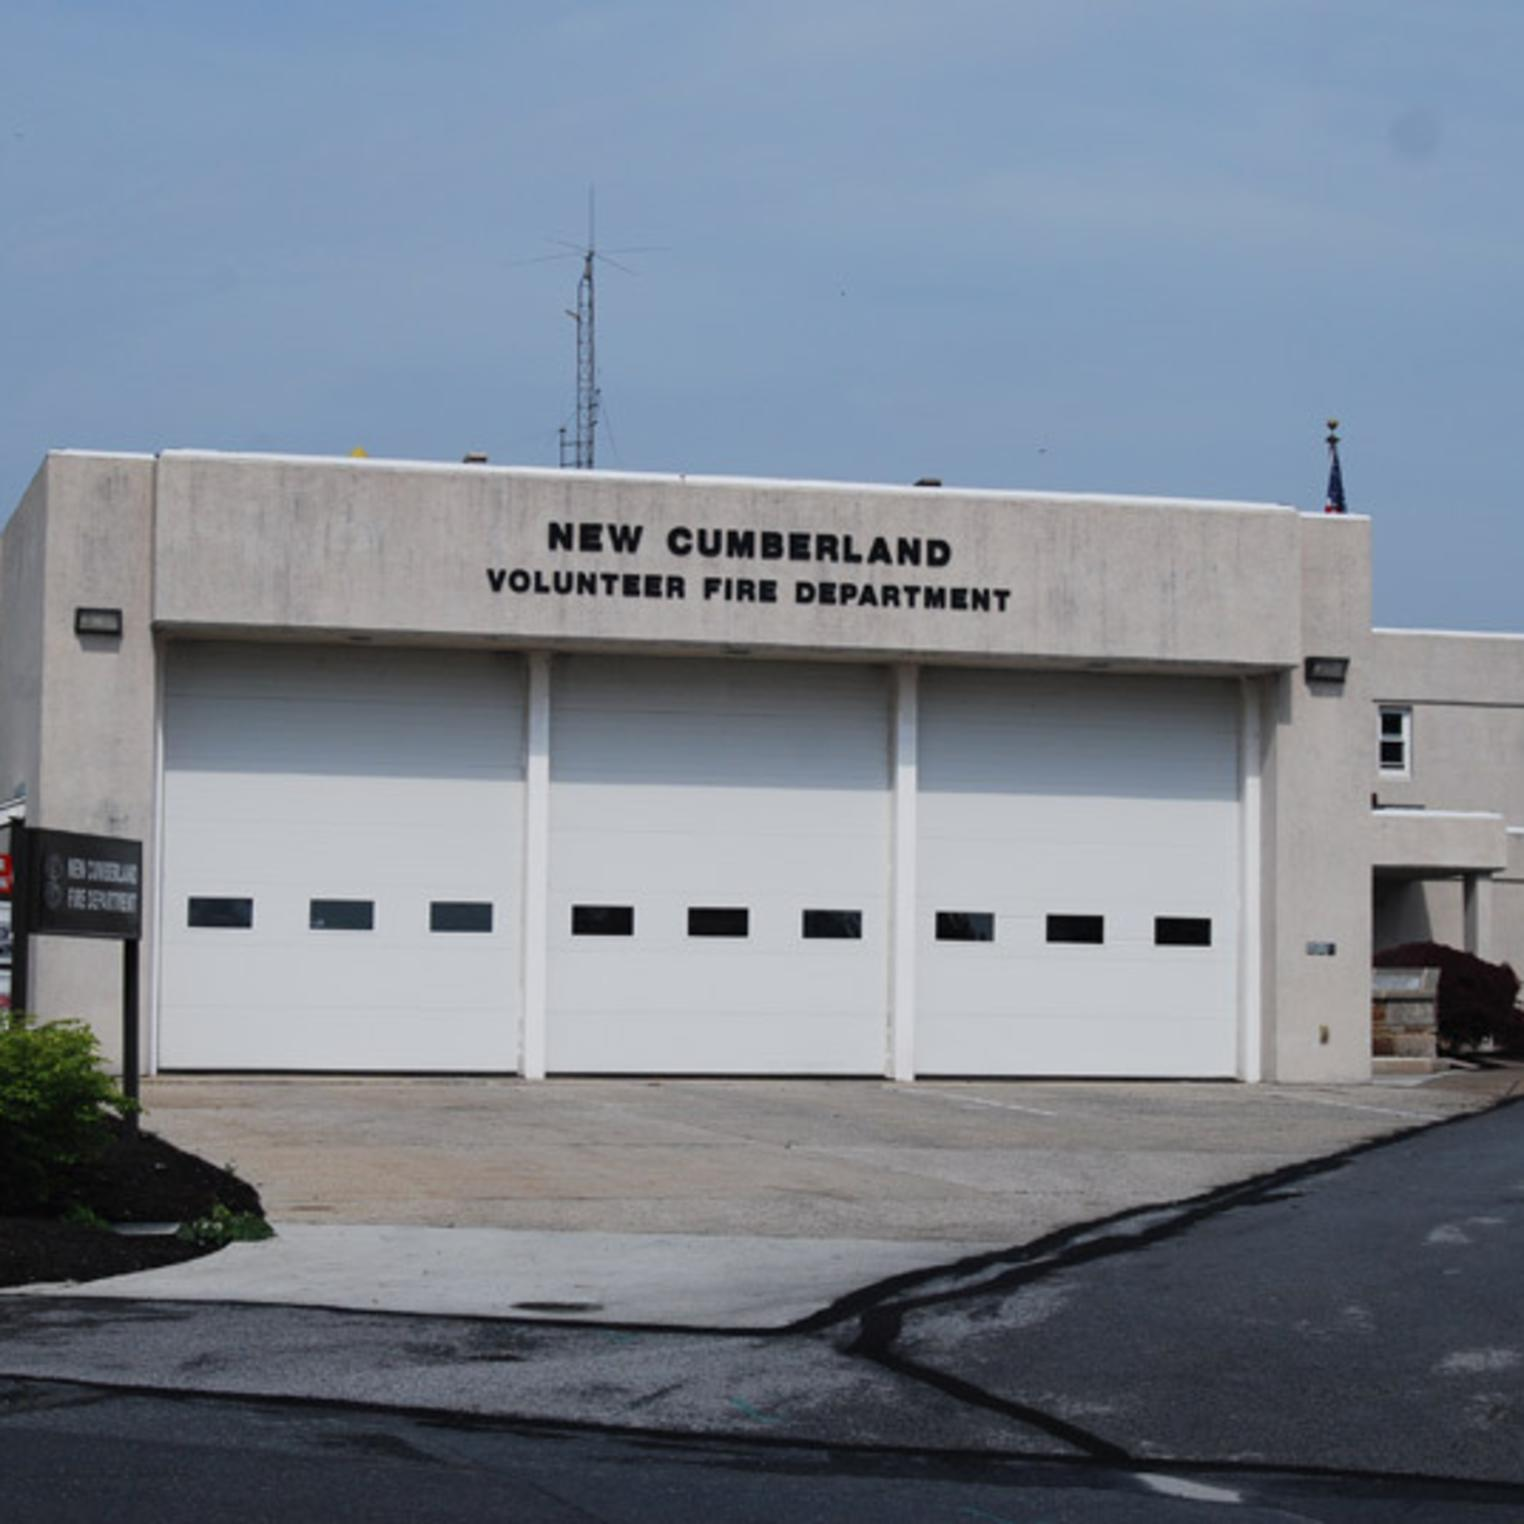 New Cumberland Fire Department